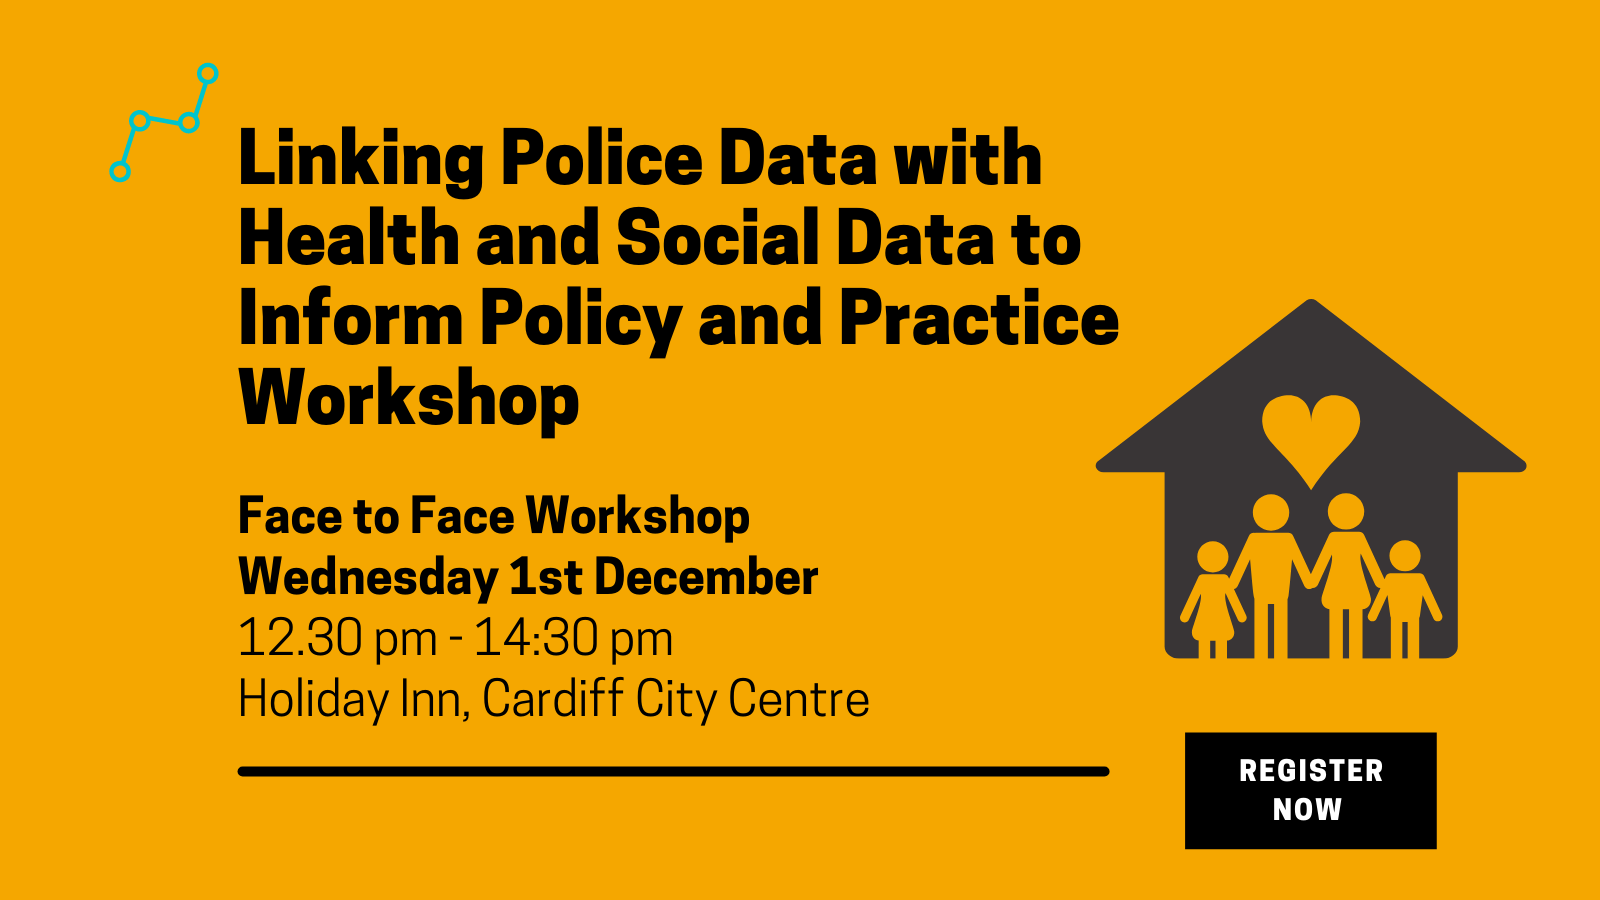 Linking Police Data with Health and Social Data to Inform Policy/Practice – Face to Face Workshop